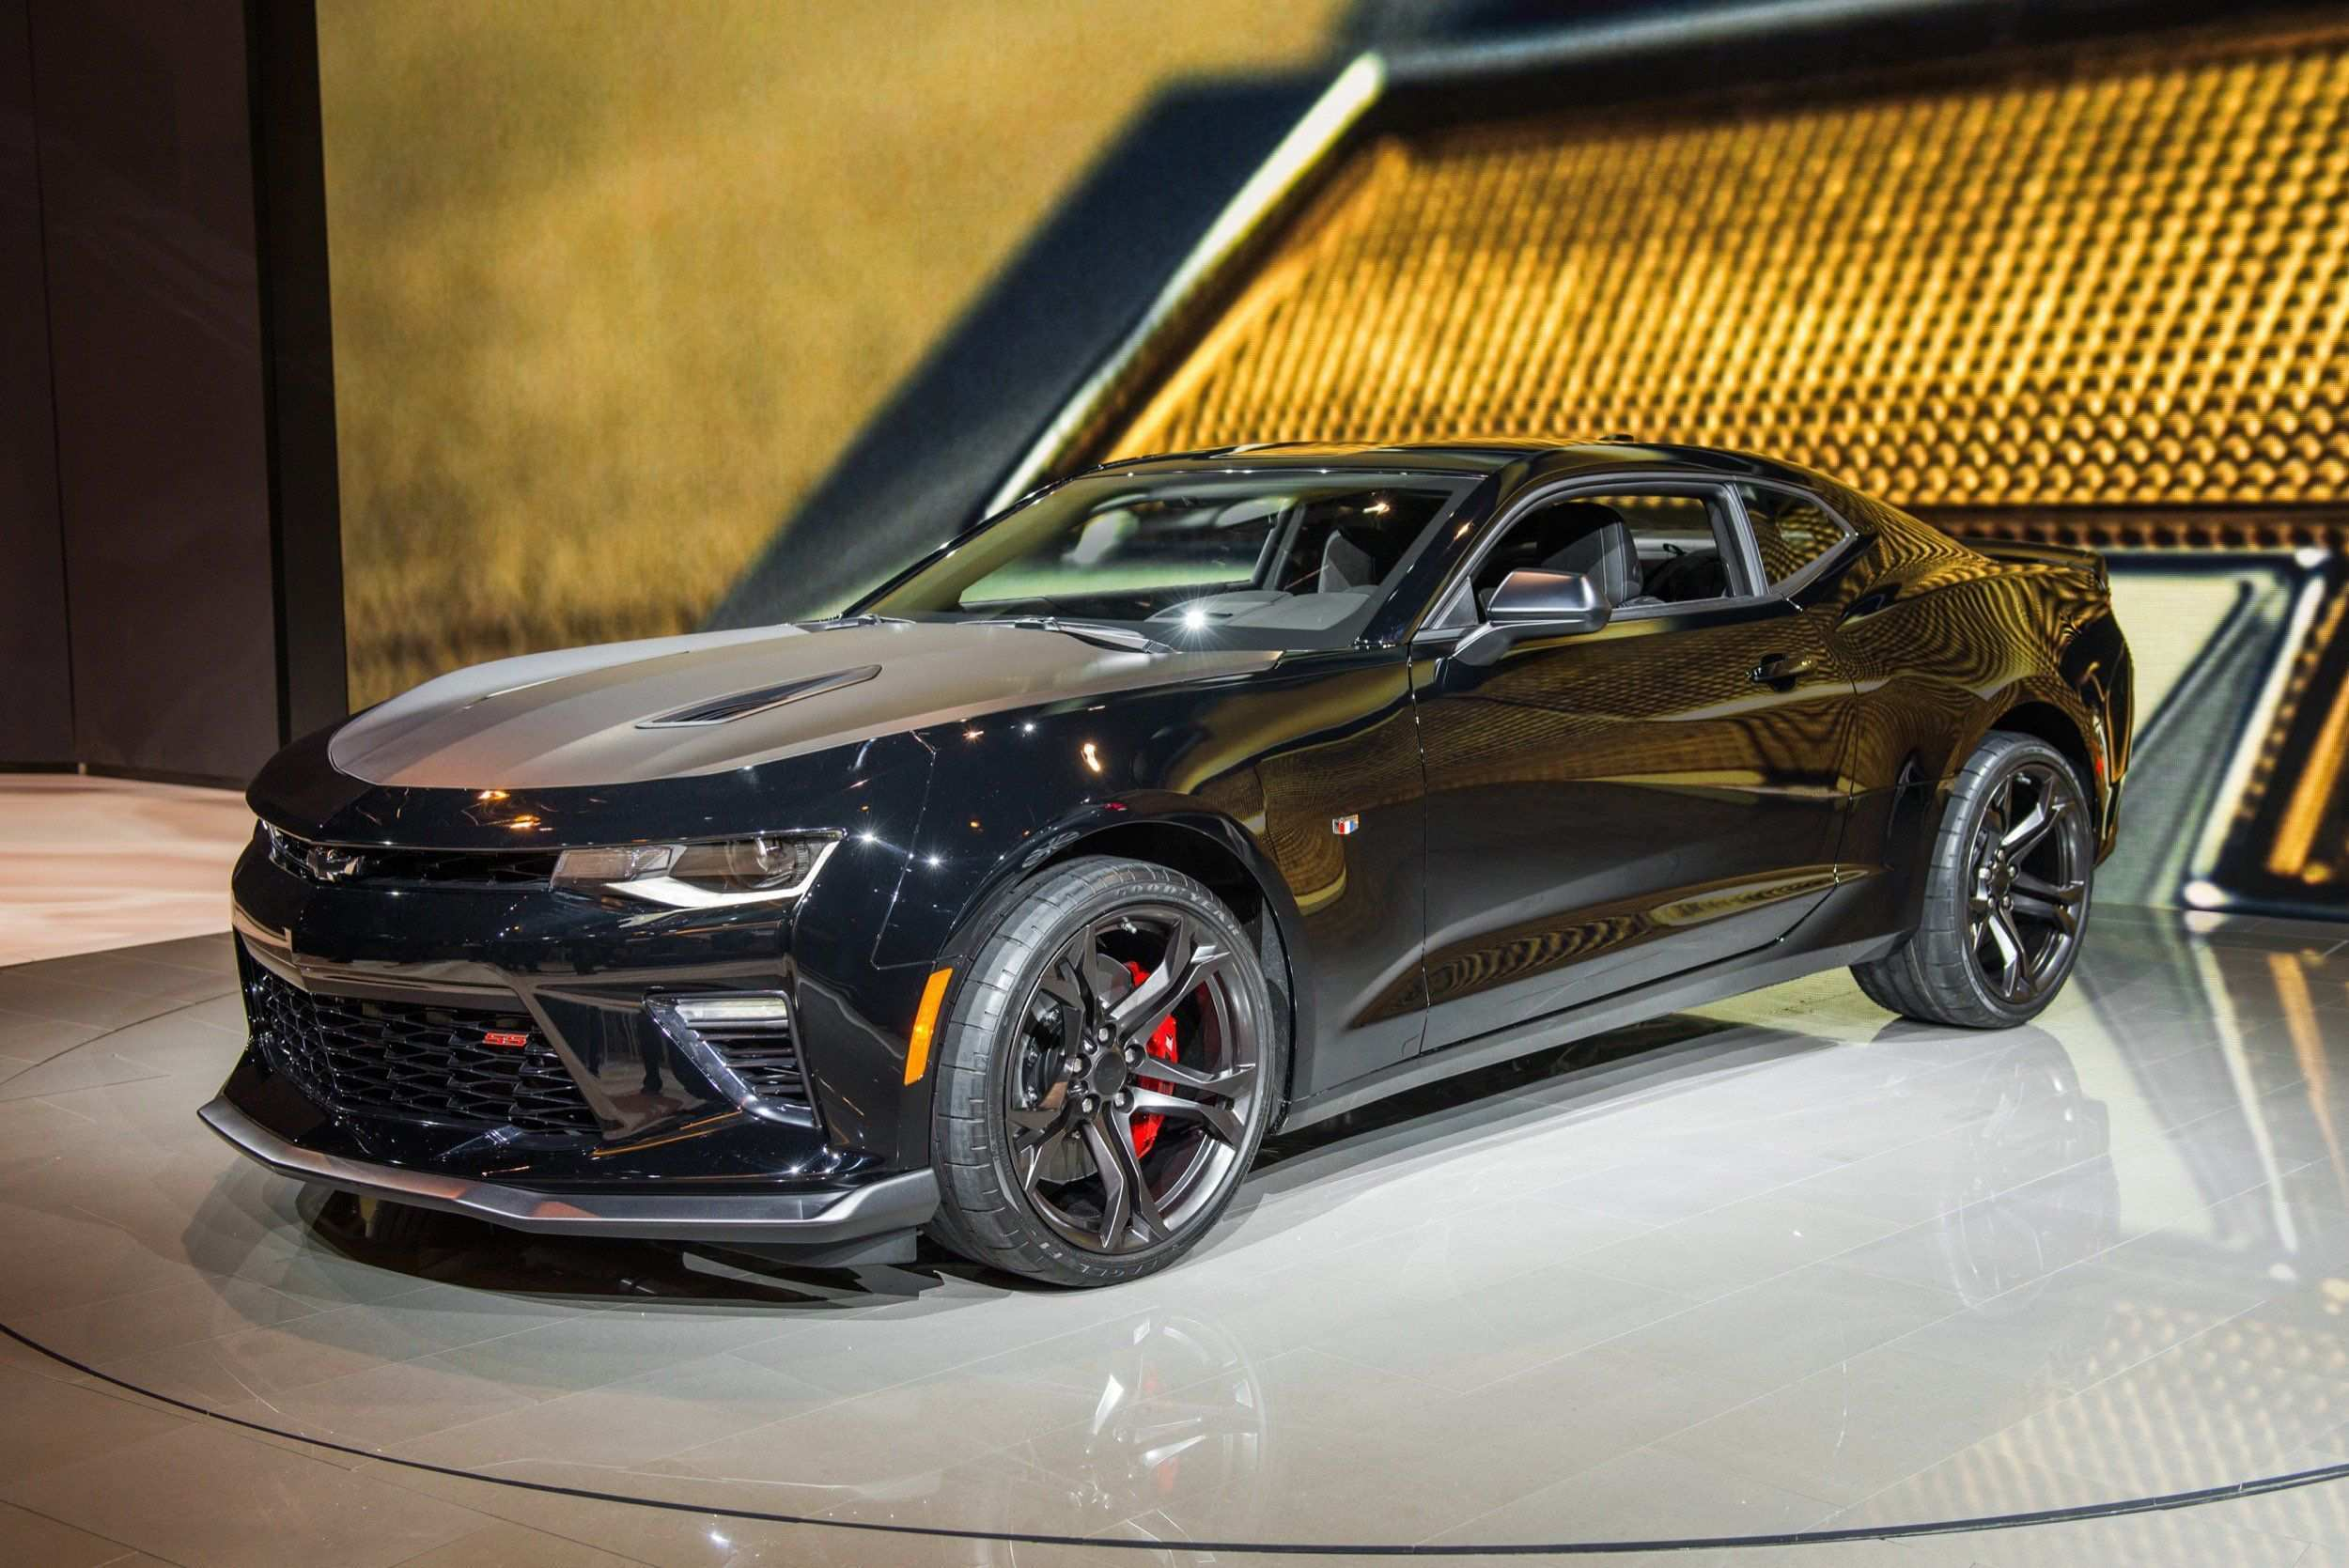 75 The Best 2020 Chevy Camaro Overview